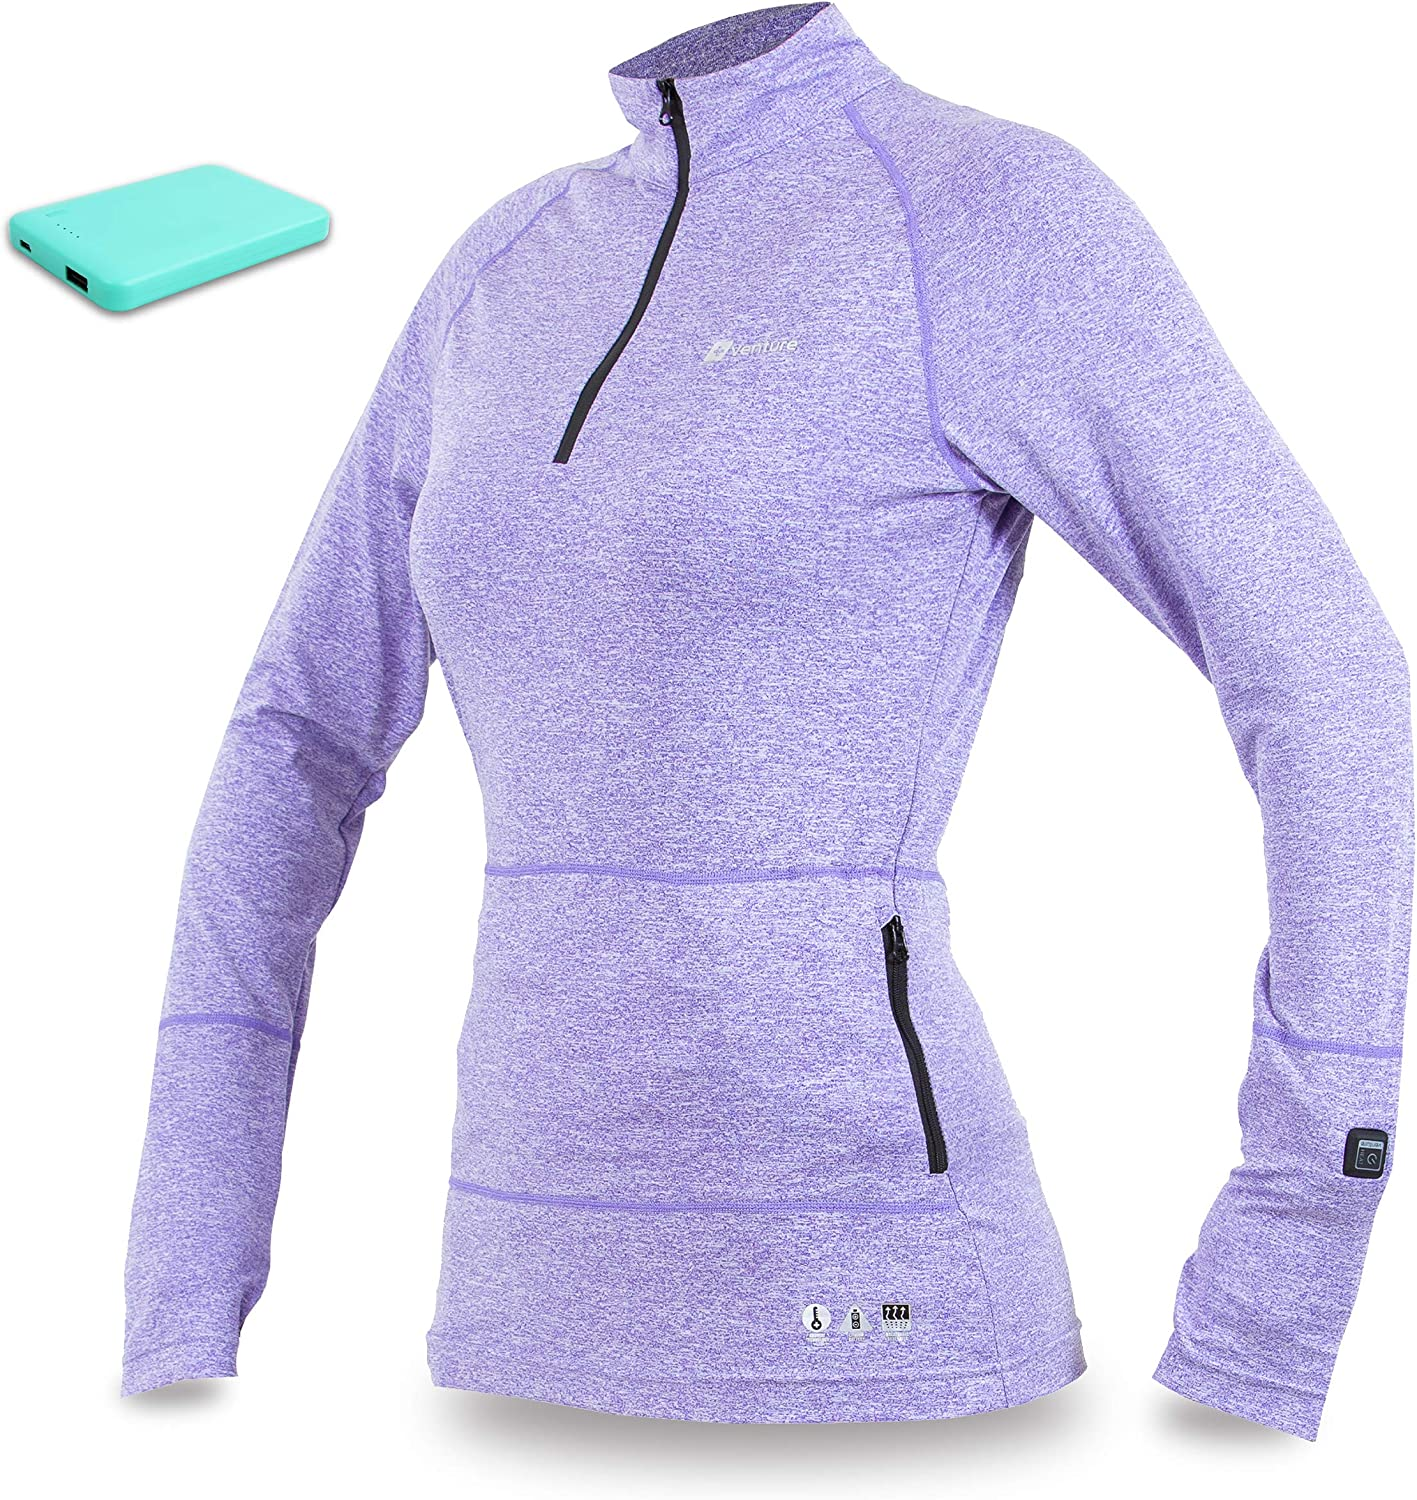 Venture Heat Women's Heated Base Layer with Battery 6 Hour  The Nomad 1 4 Zip Shirt, Carbon Fiber